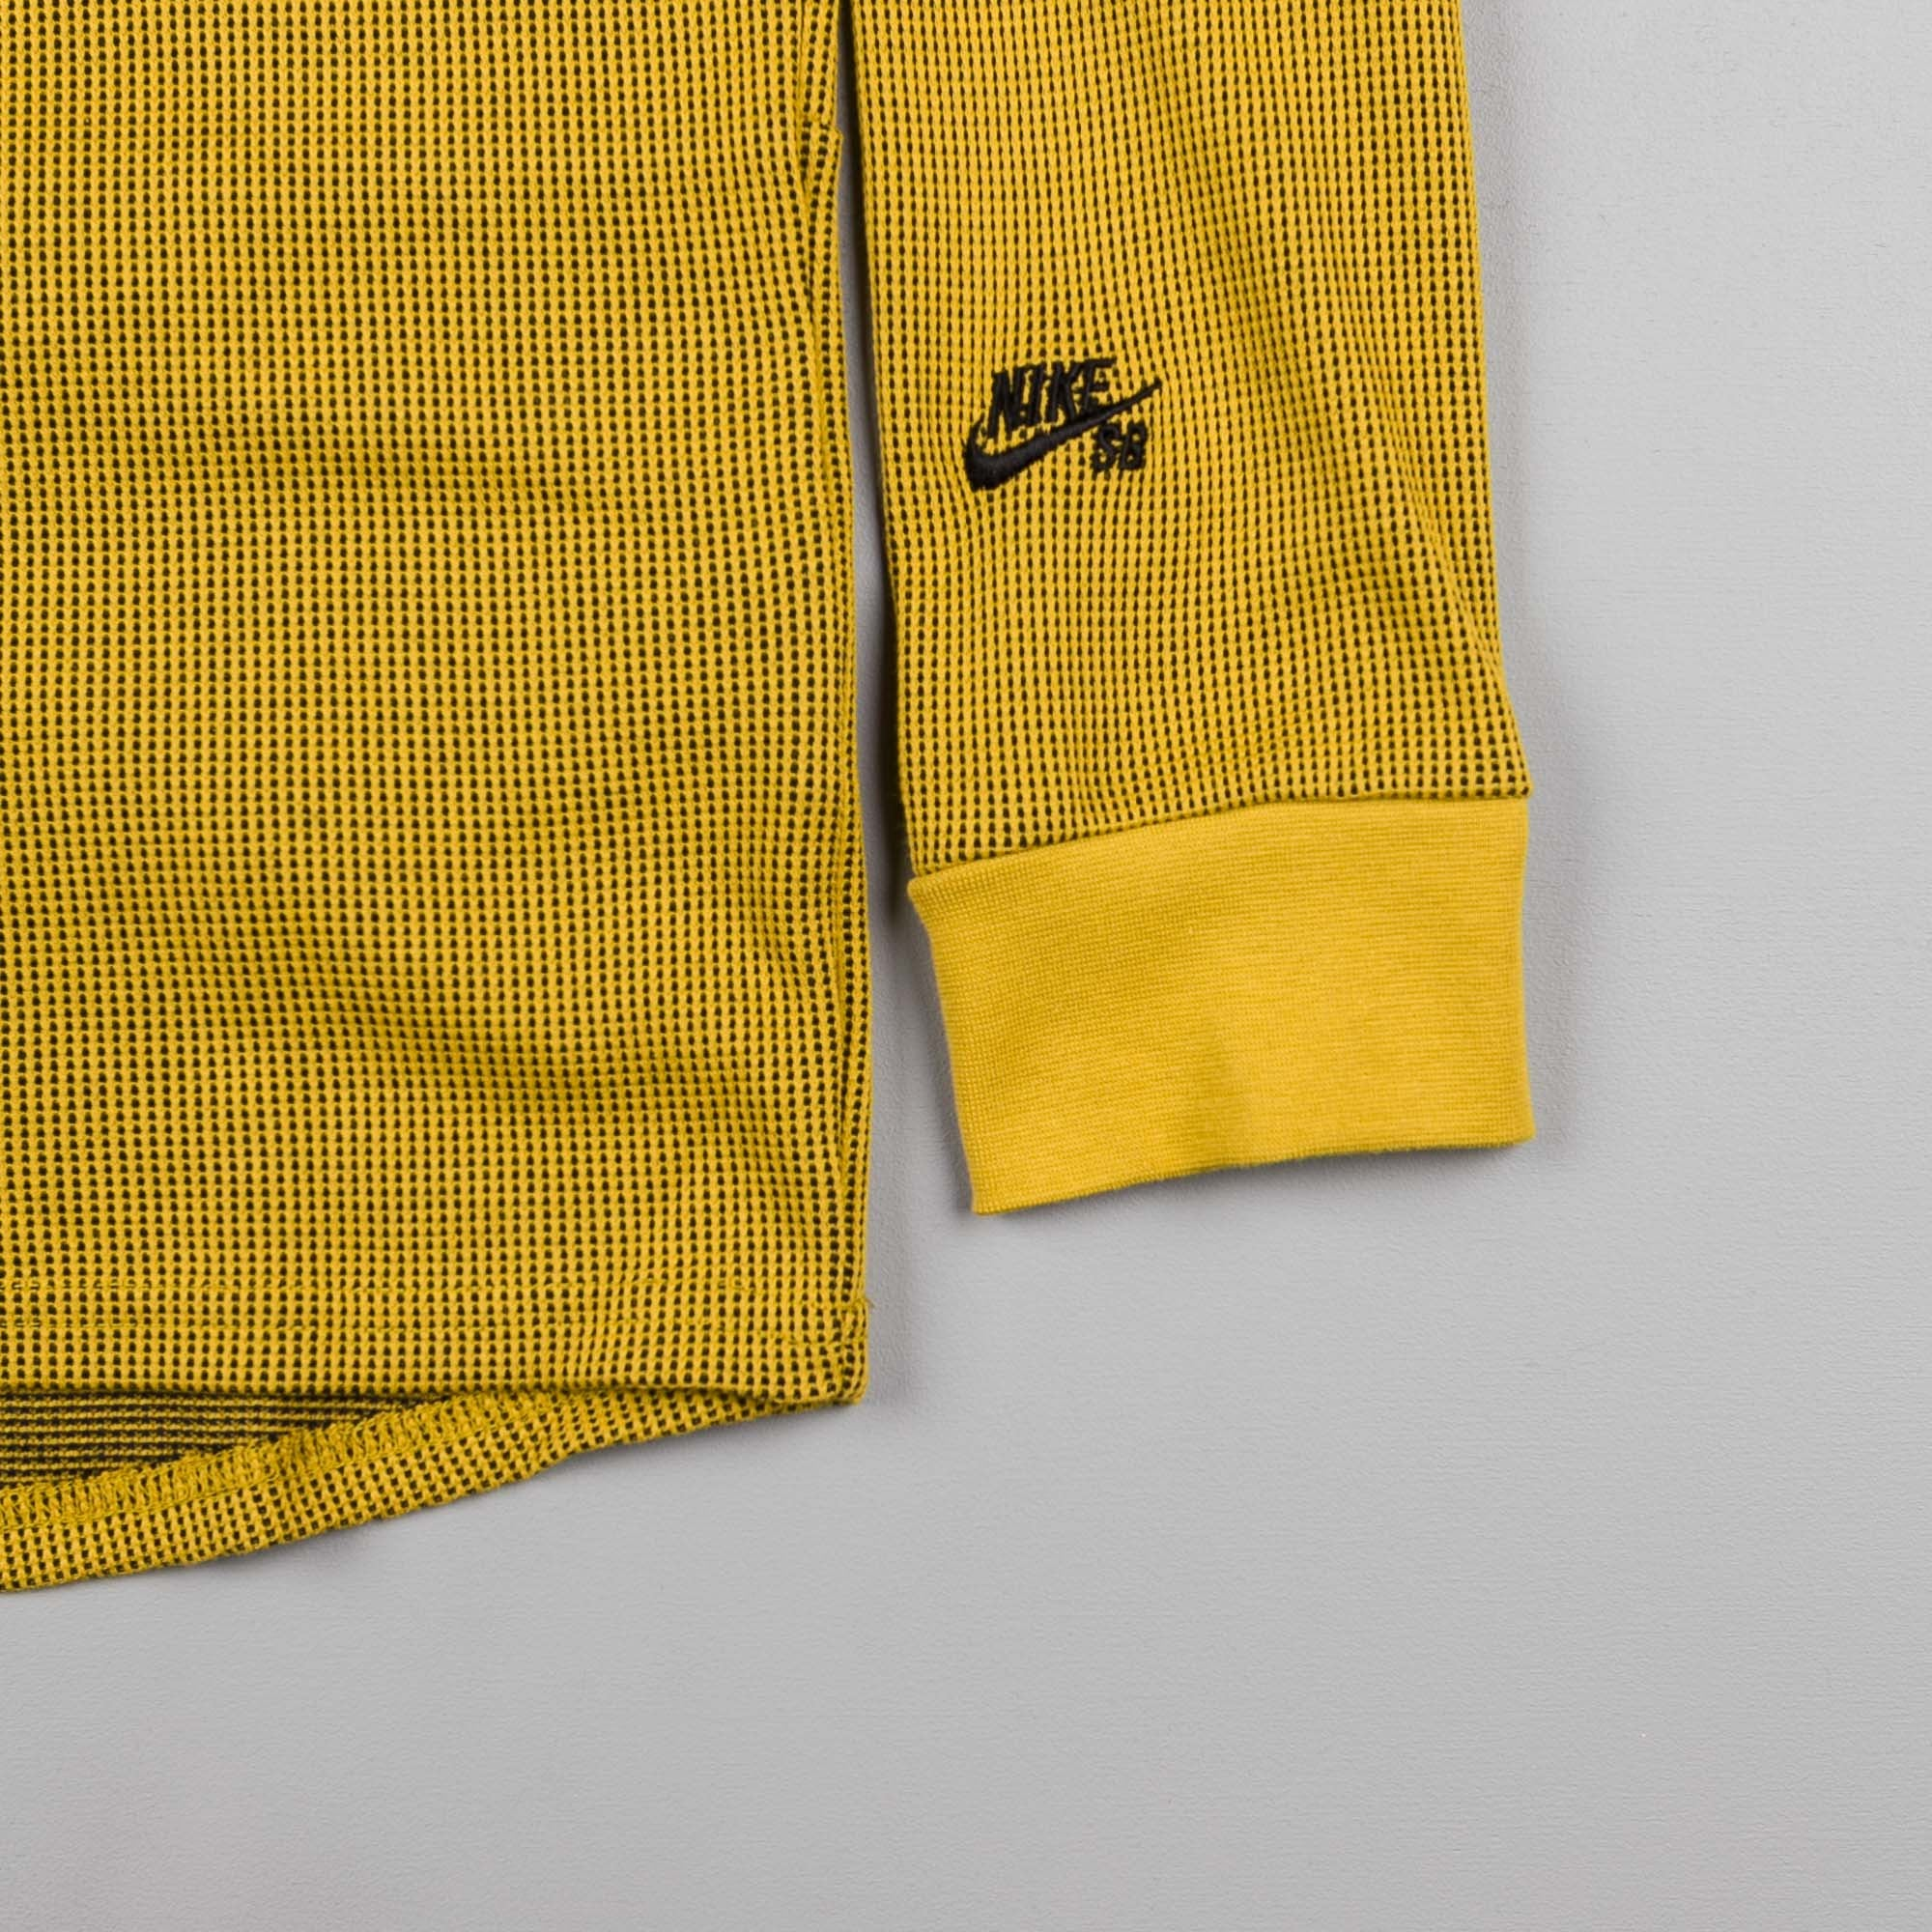 Nike SB Thermal Long Sleeve T-Shirt - Peat Moss / Black